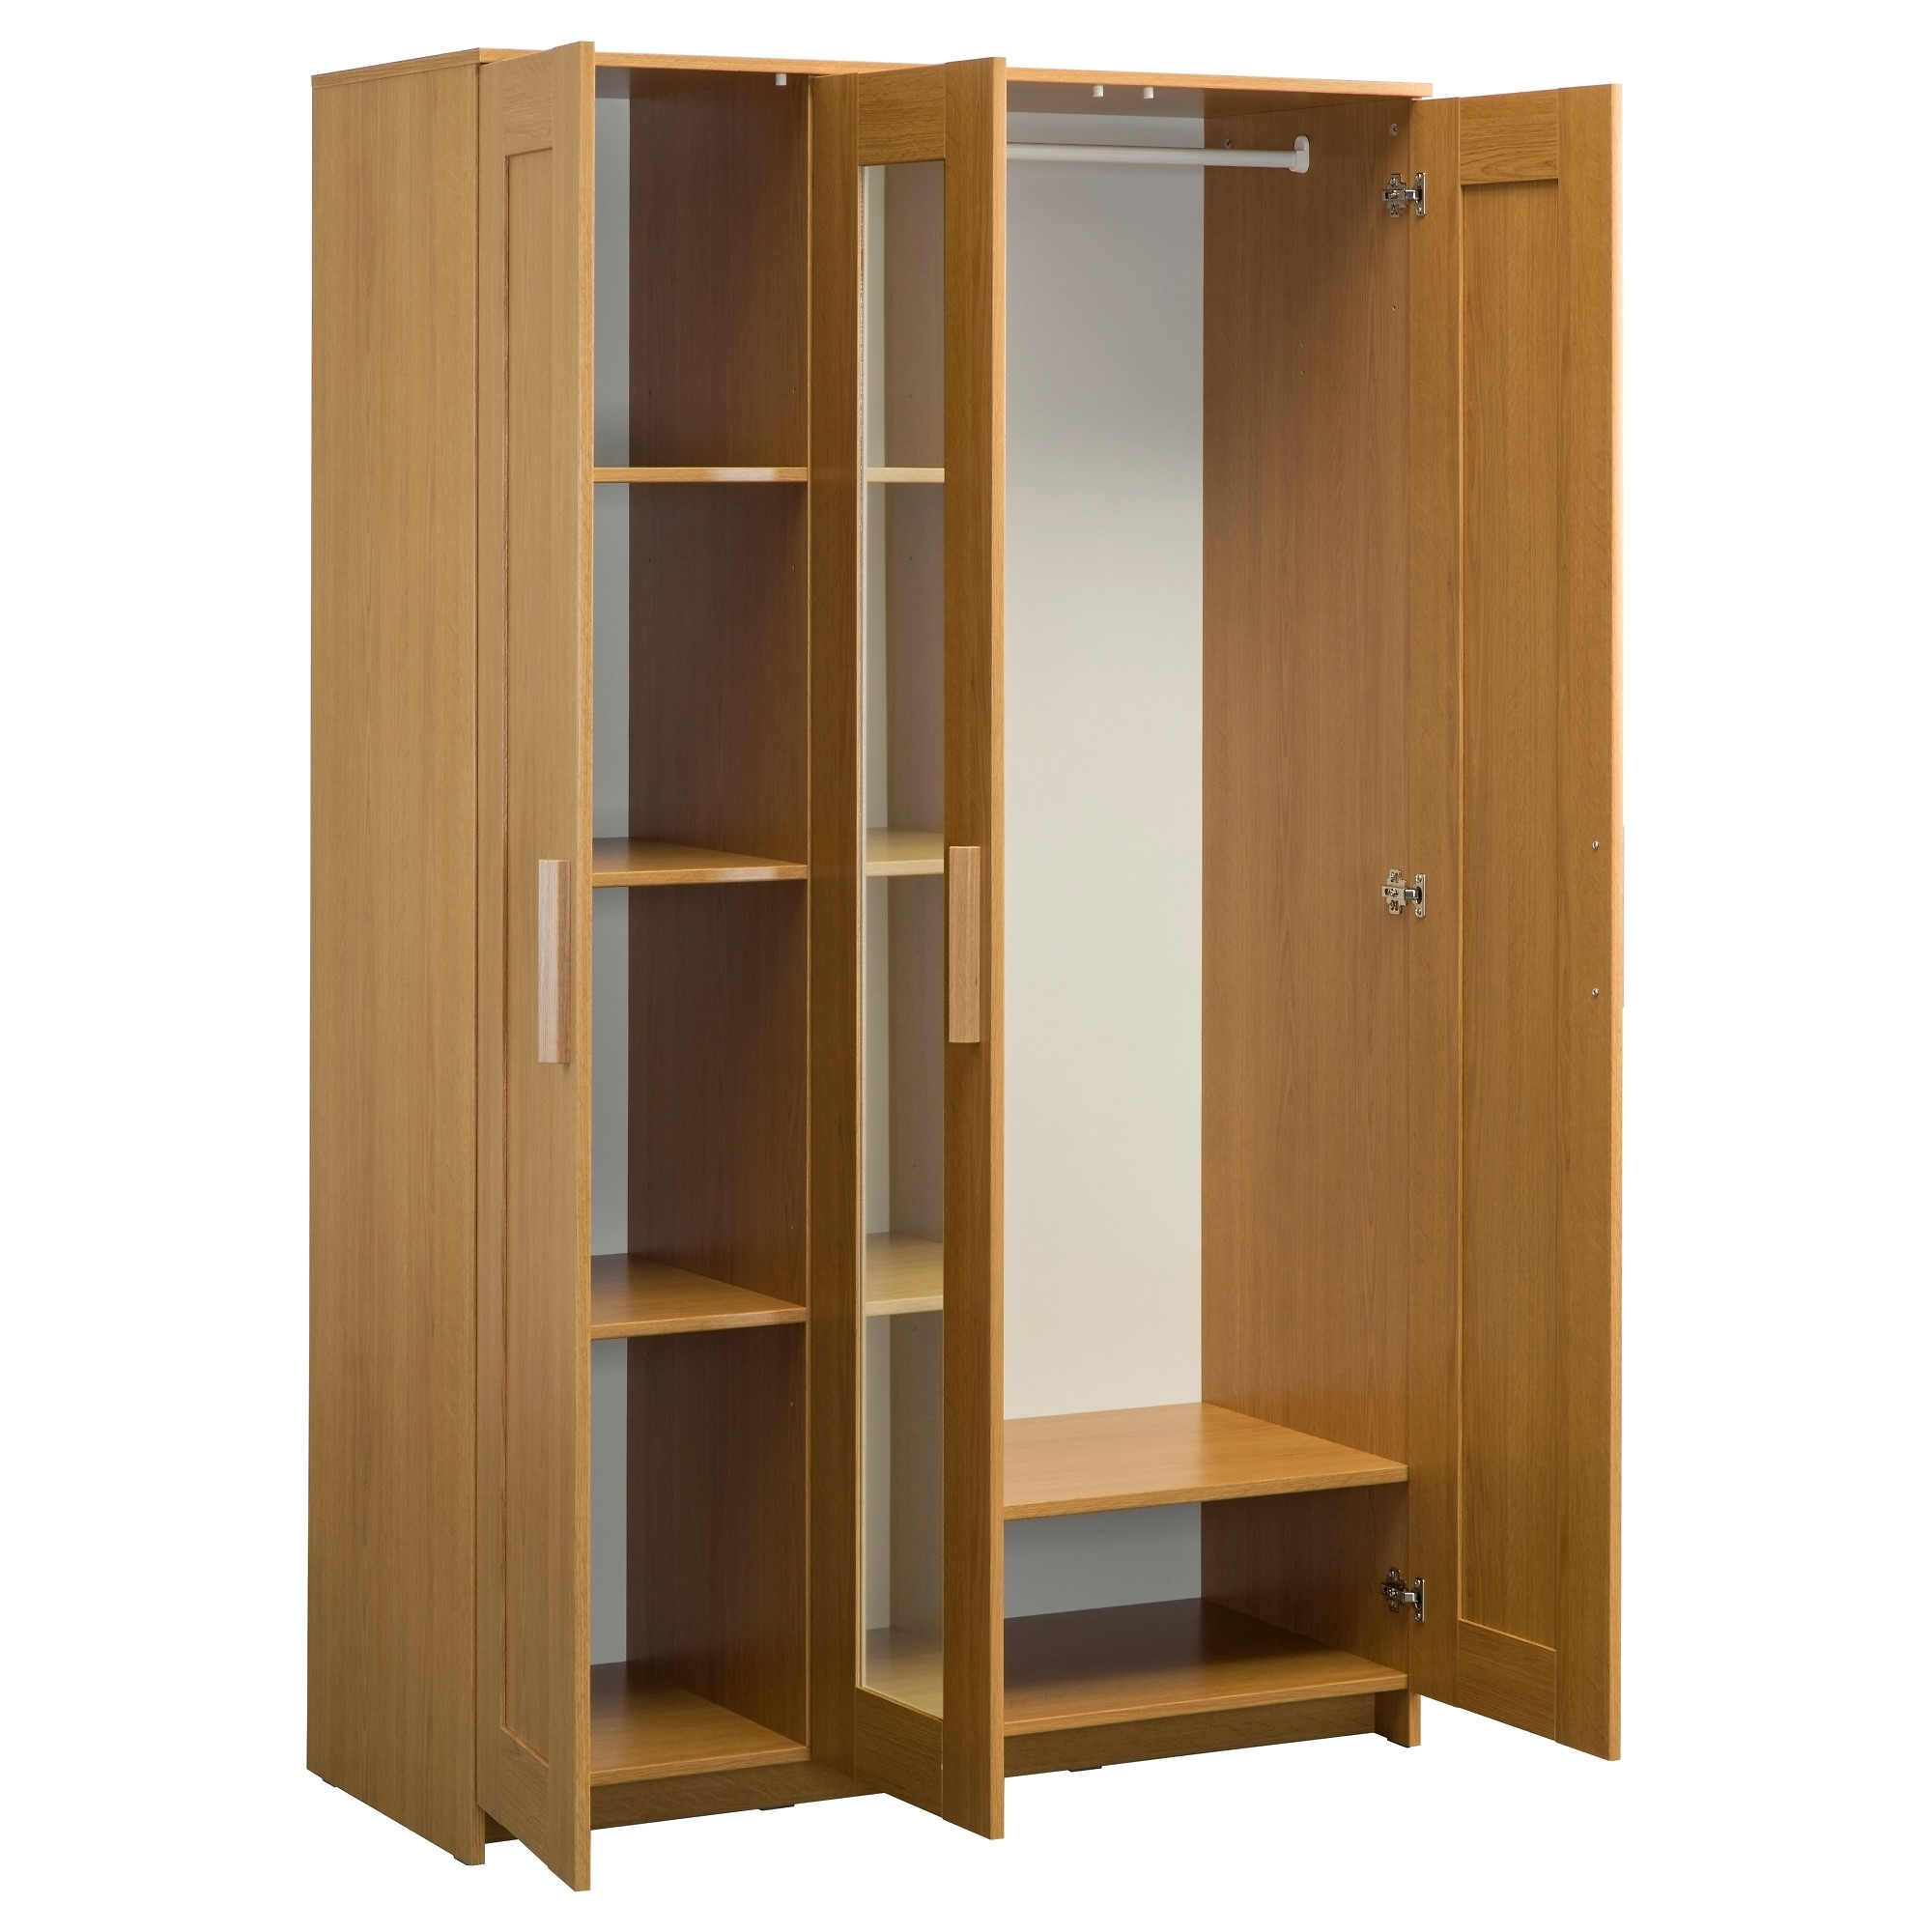 3 Door Wardrobes For 2017 Brimnes Wardrobe With 3 Doors Oak Effect 117X190 Cm – Ikea (Gallery 2 of 15)